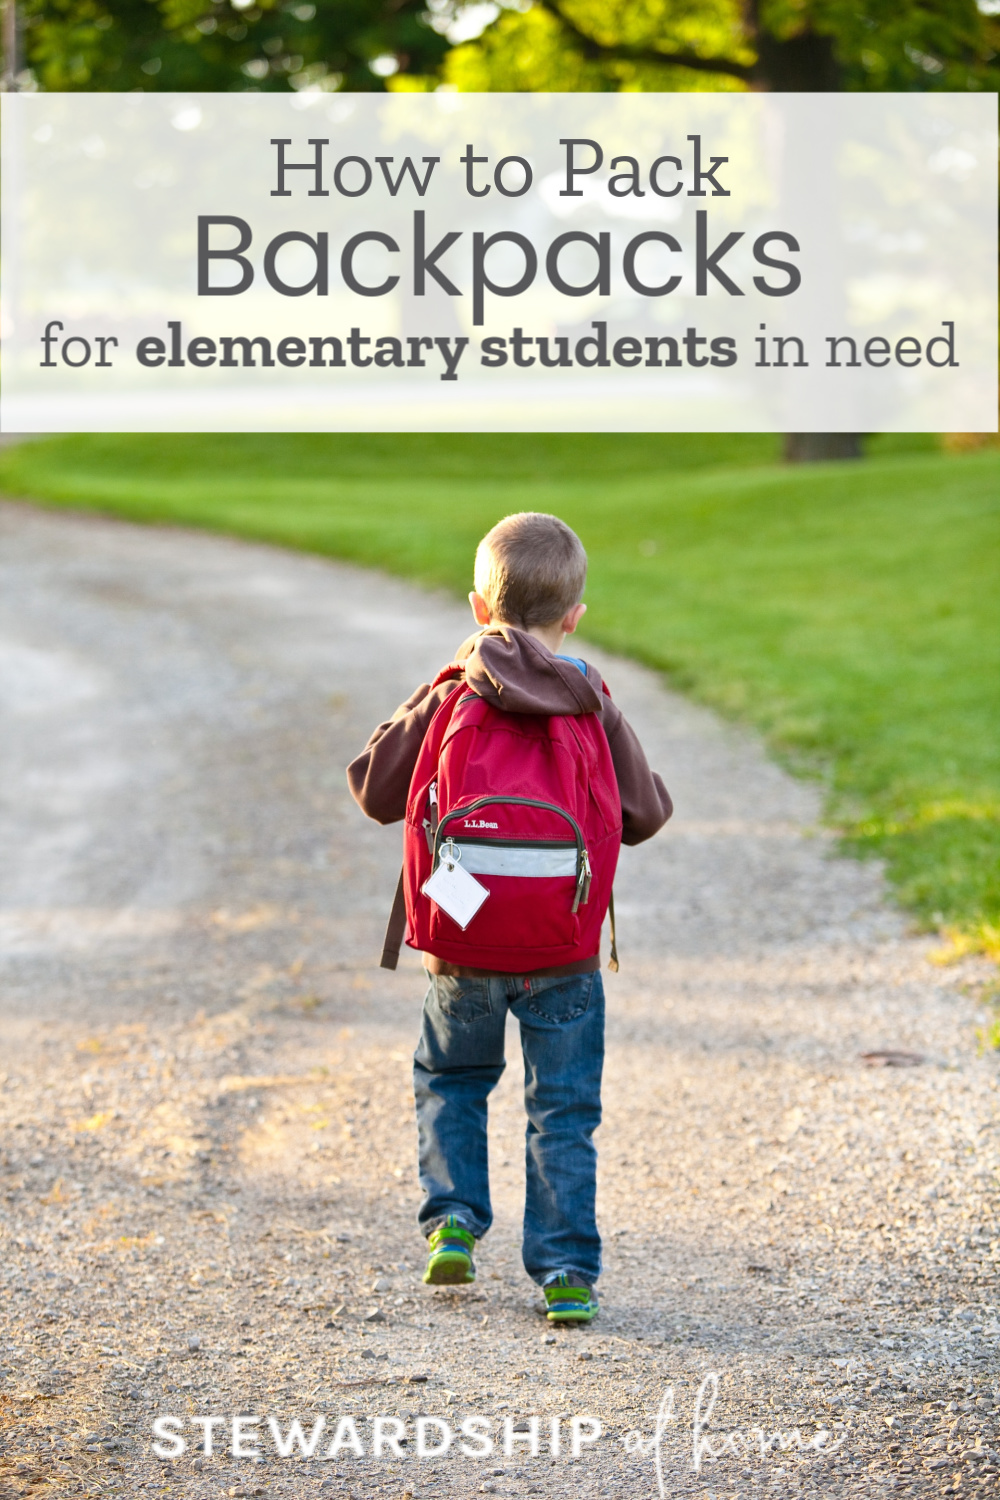 Pack Backpacks for Elementary Students in Need